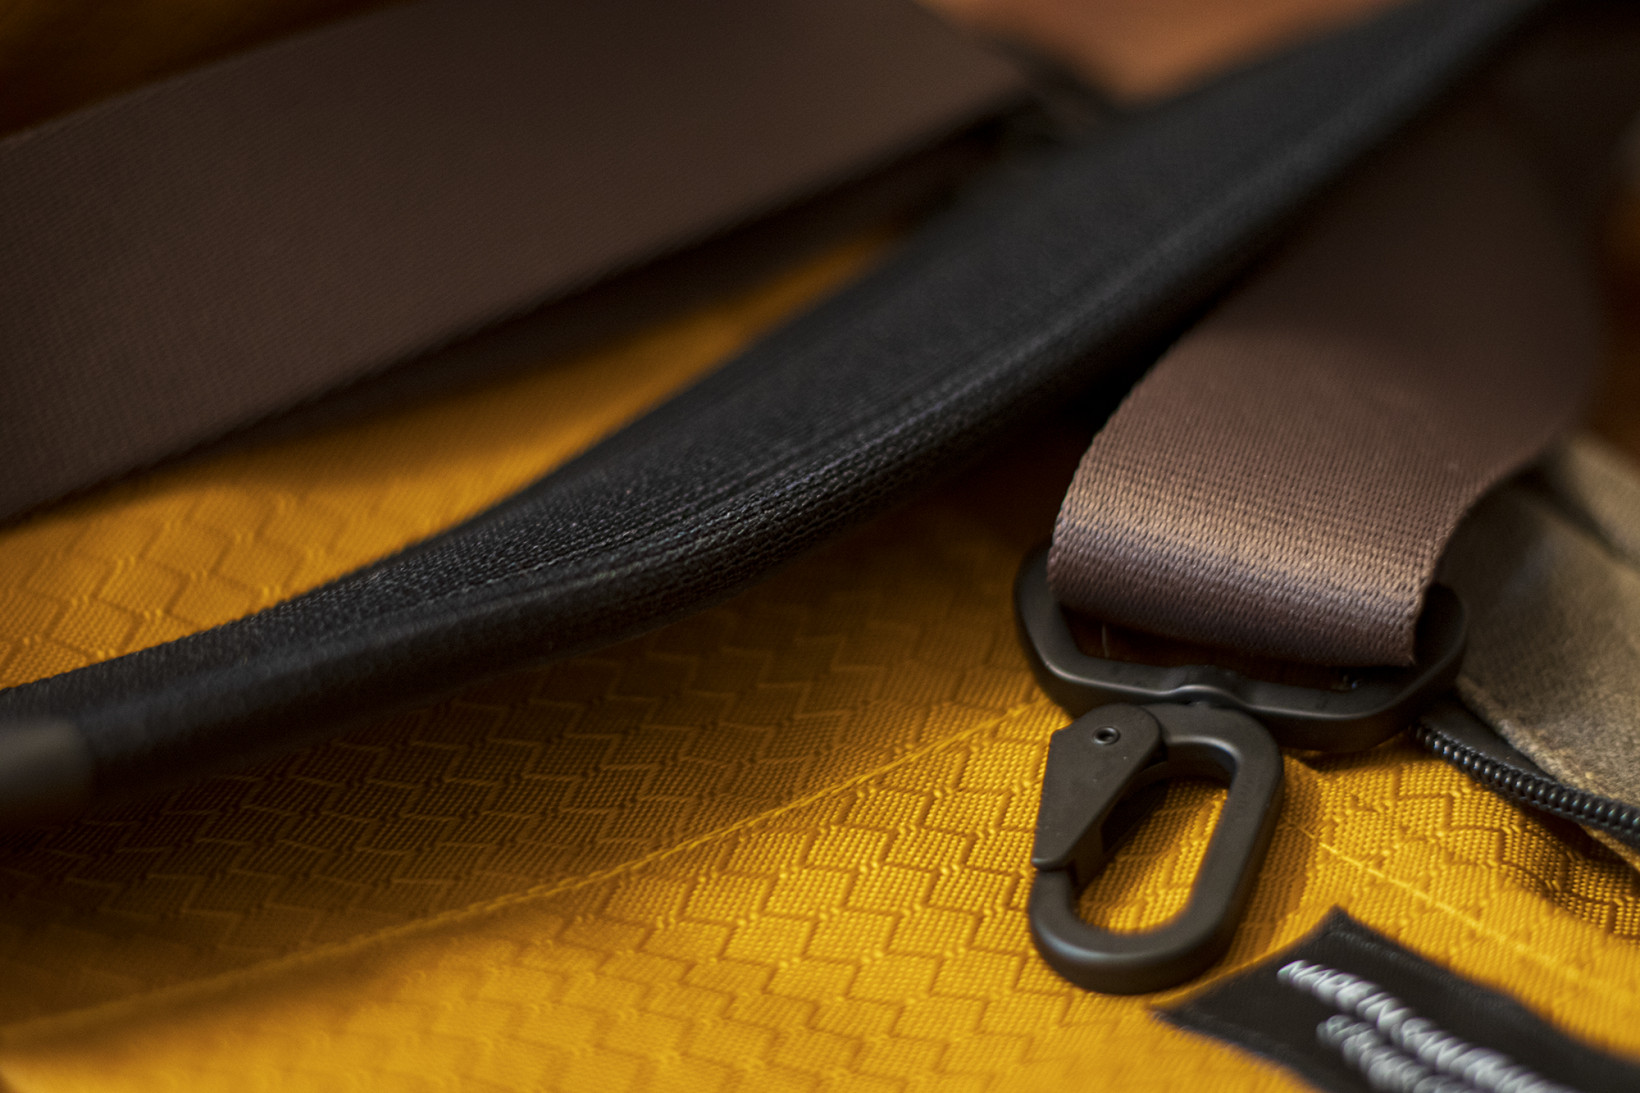 The Tech Folio features high quality hardware and materials throughout the bag